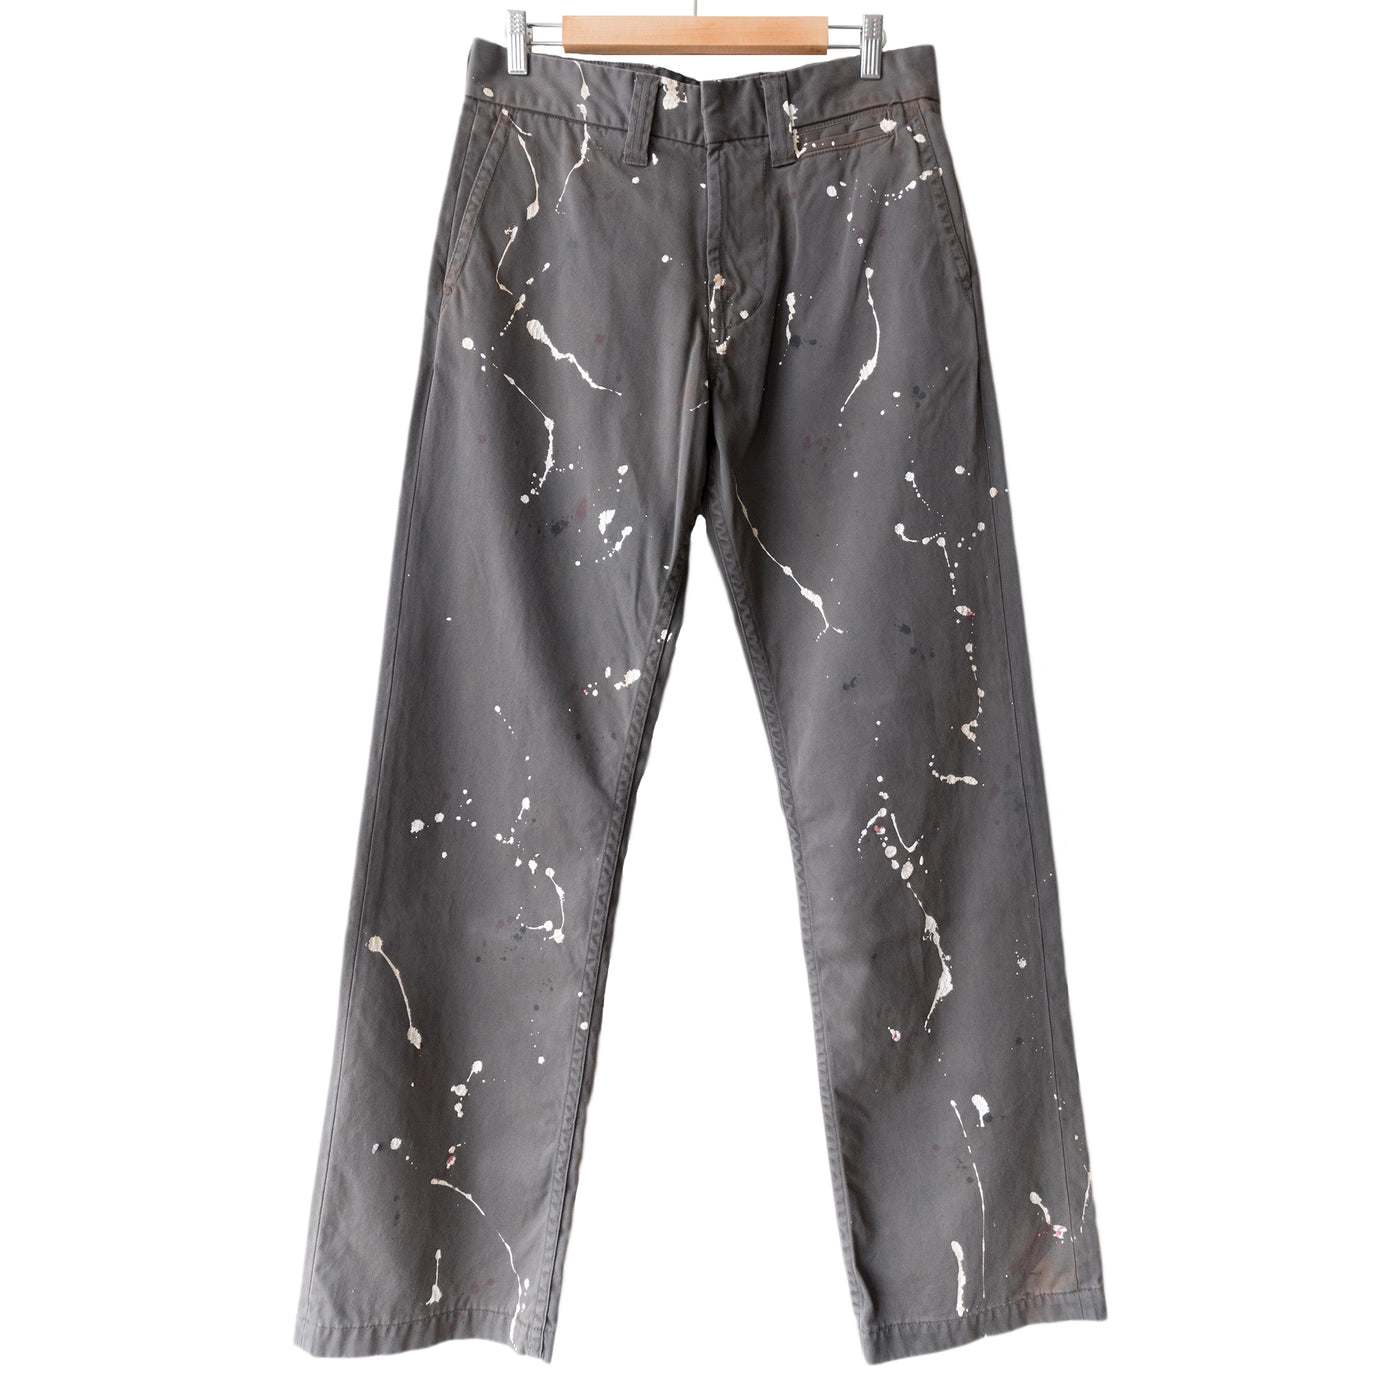 Slowgun Painter Pants